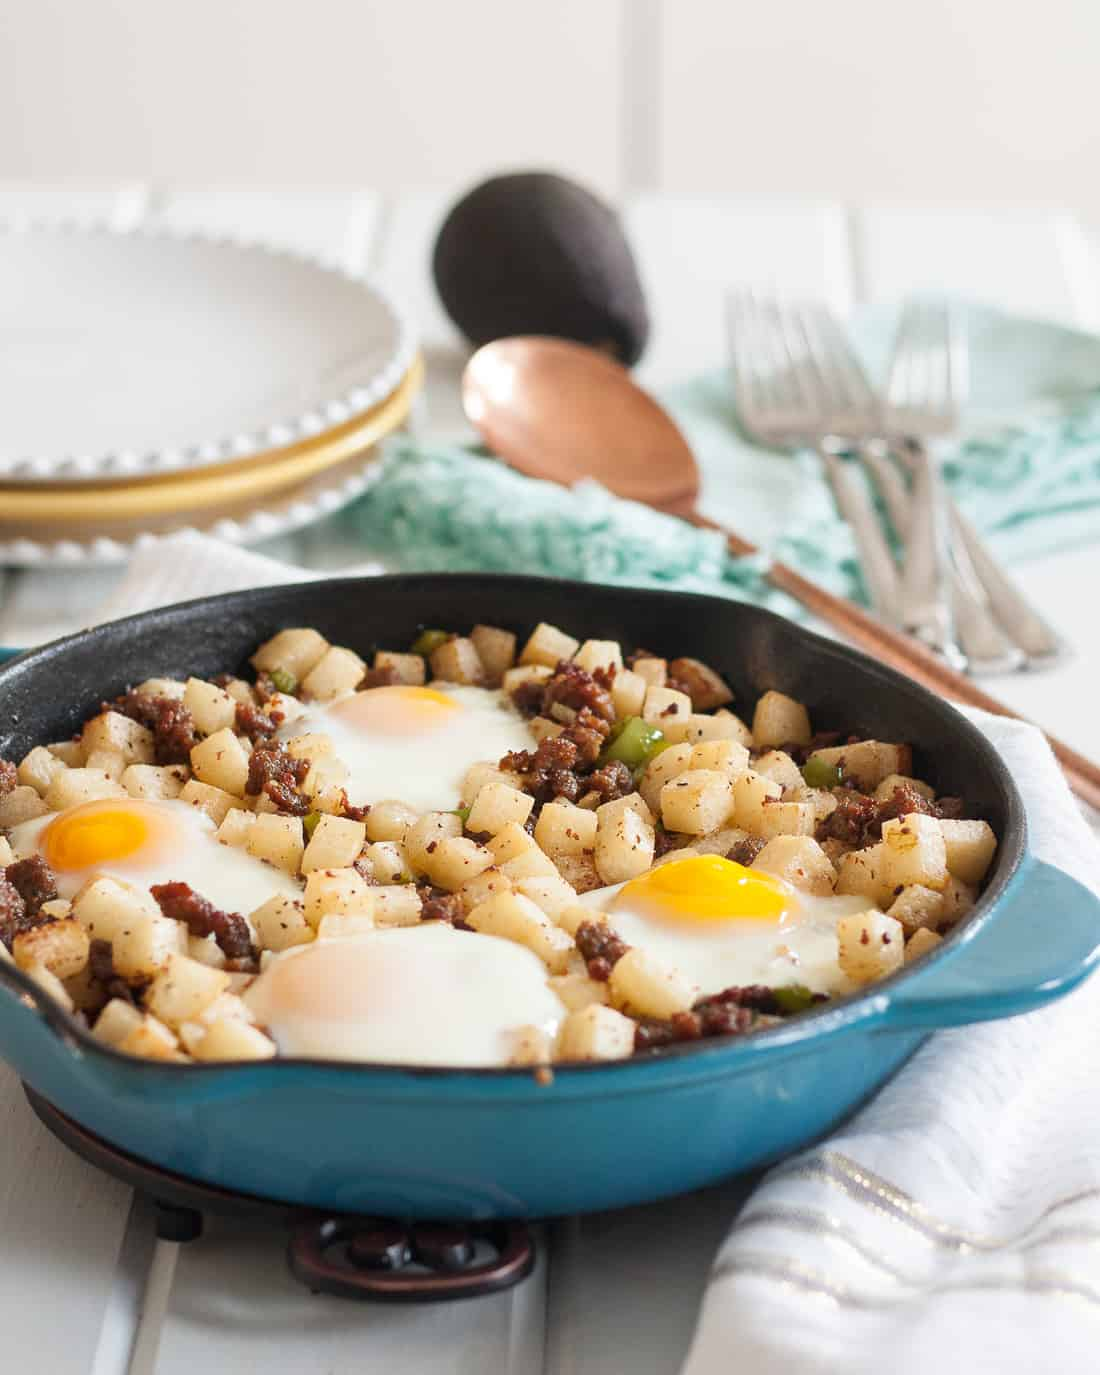 Give the traditional breakfast skillet a healthier makeover! Try this low carb jicama breakfast skillet next time you're in charge of brunch or want breakfast for dinner. * Recipe on GoodieGodmother.com